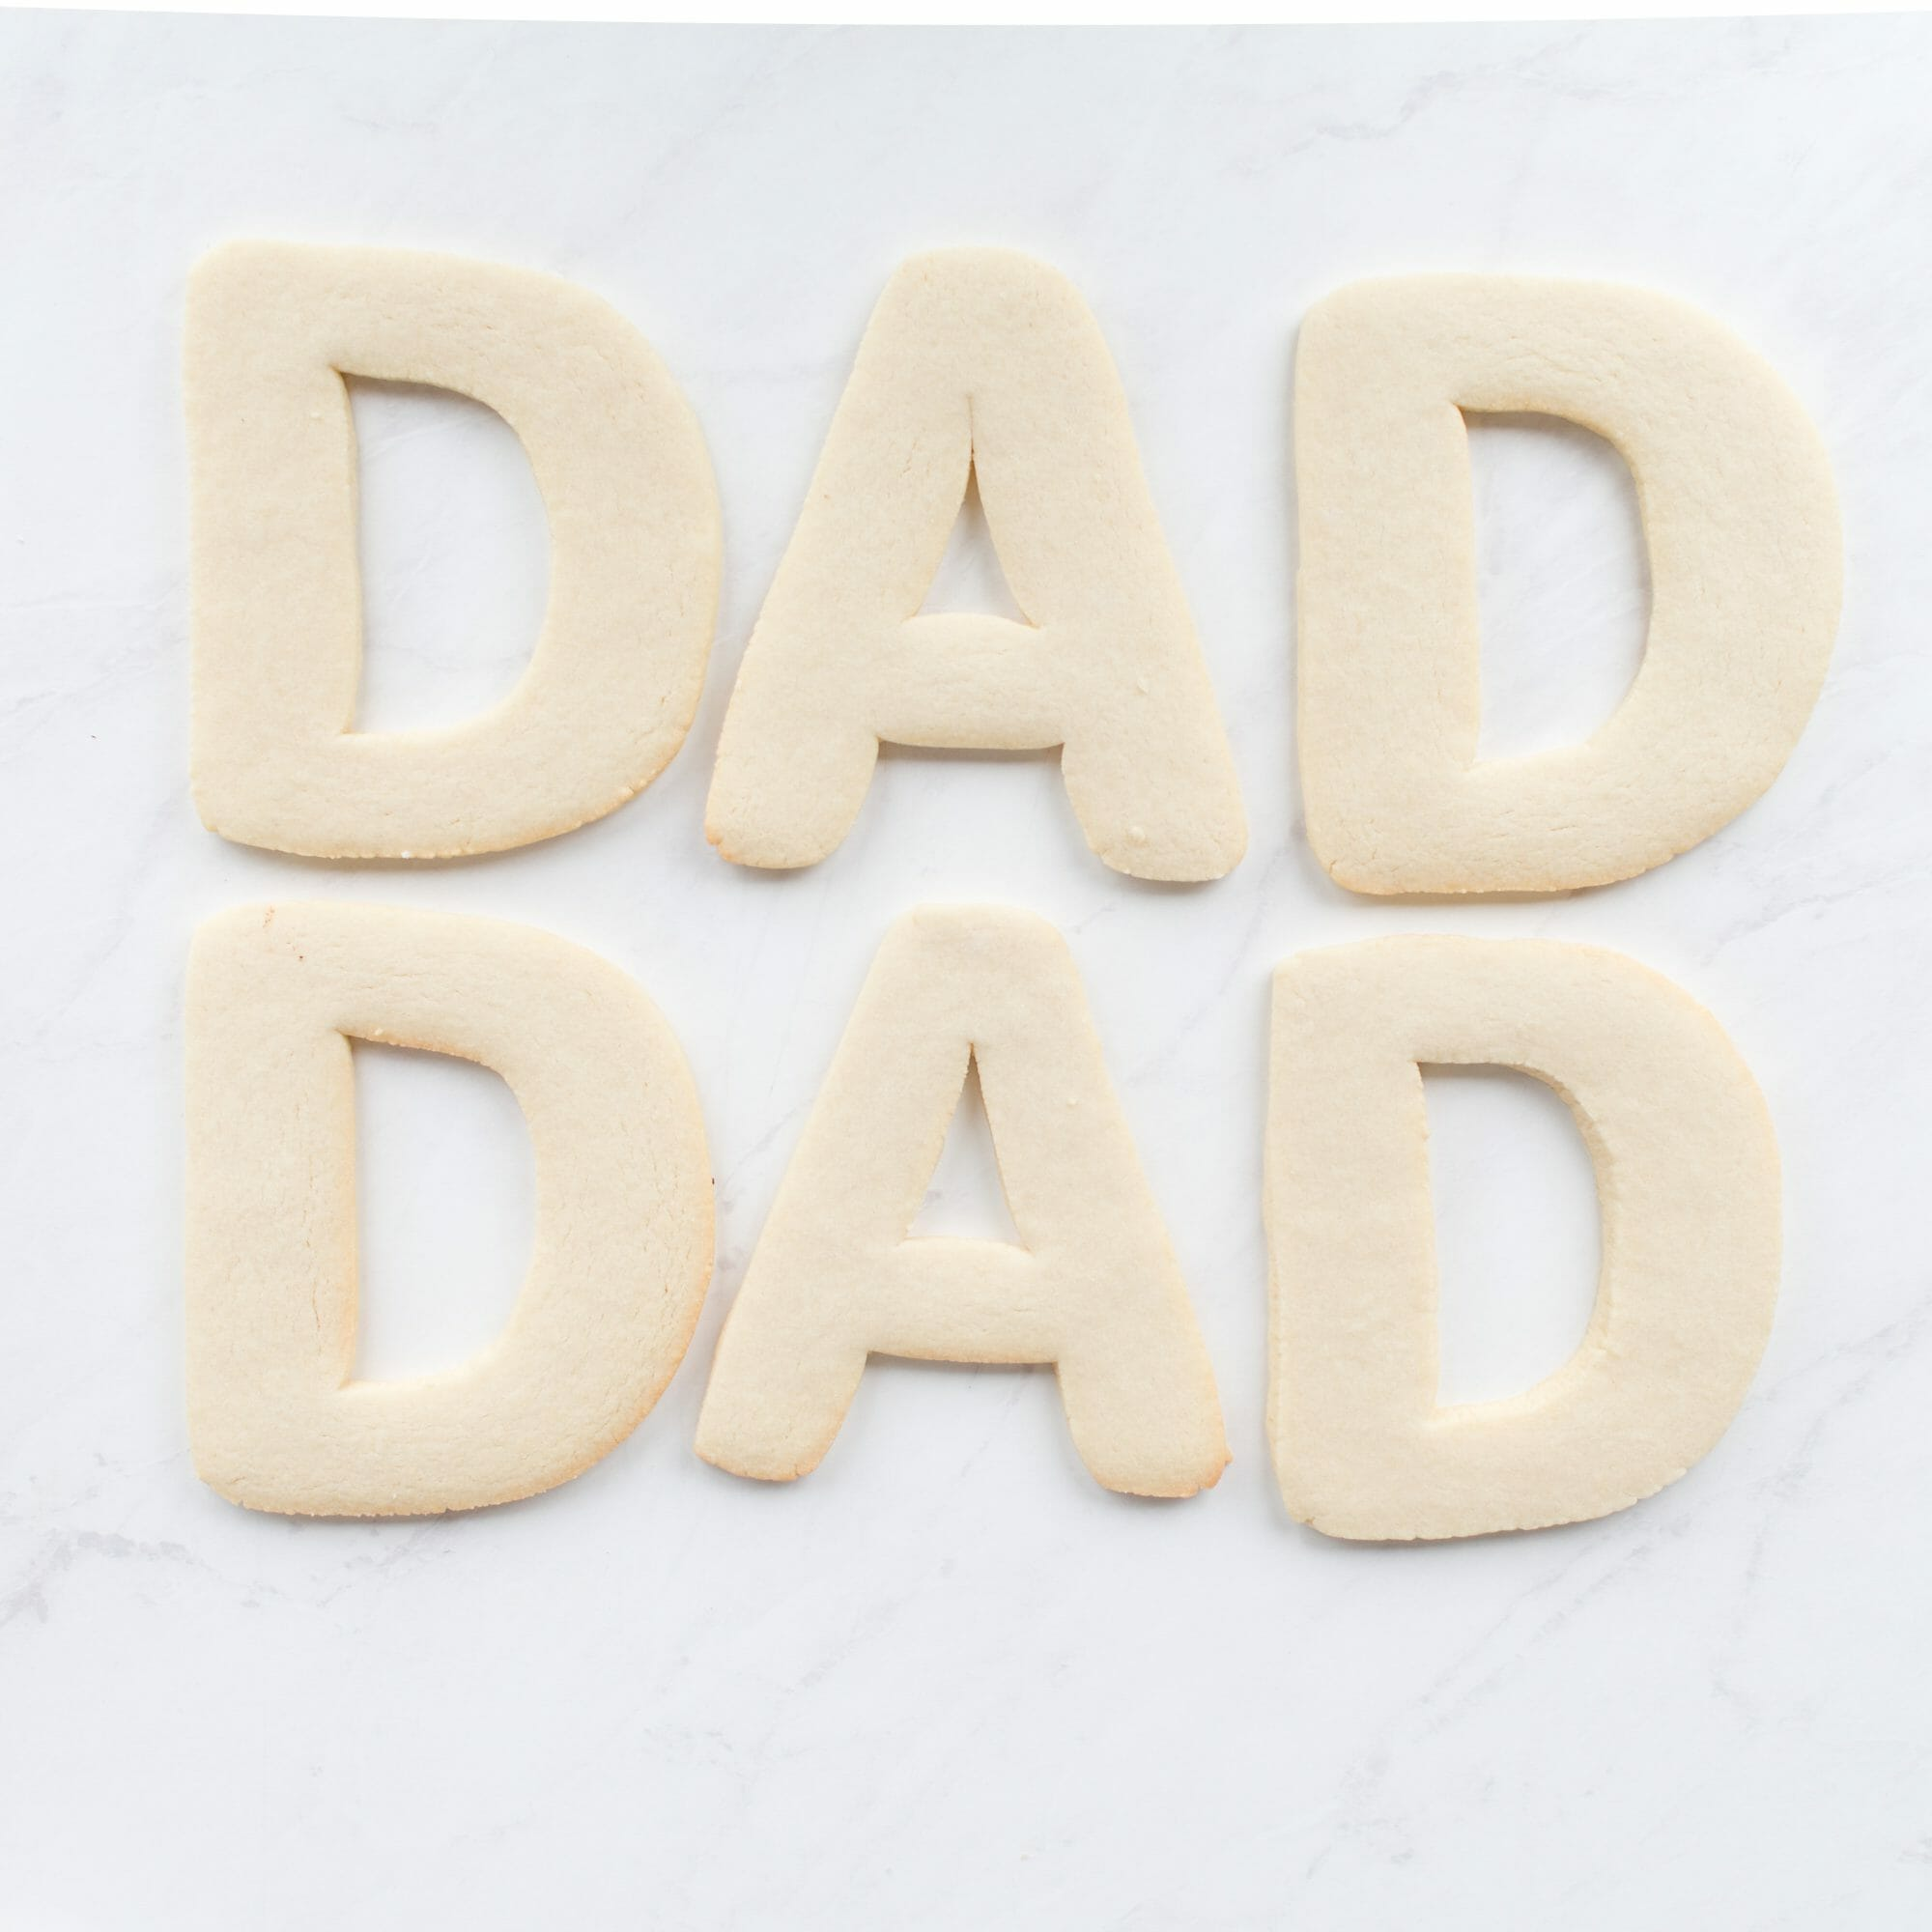 DAD Cookie Cake | Father's Day ideas for kids | Father's Day desserts | diy Father's Day ideas || JennyCookies.com #dadcookies #fathersday #fathersdaygift #diyfathersday #giftideas #jennycookies